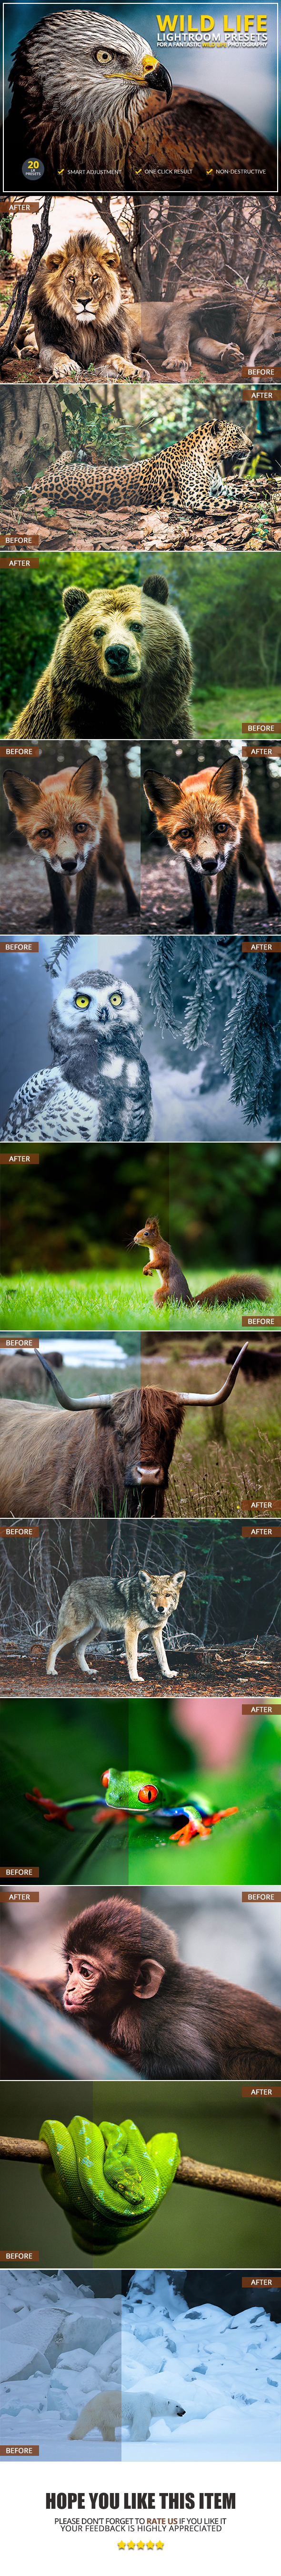 20 Wild Life Lightroom Presets - Lightroom Presets Add-ons